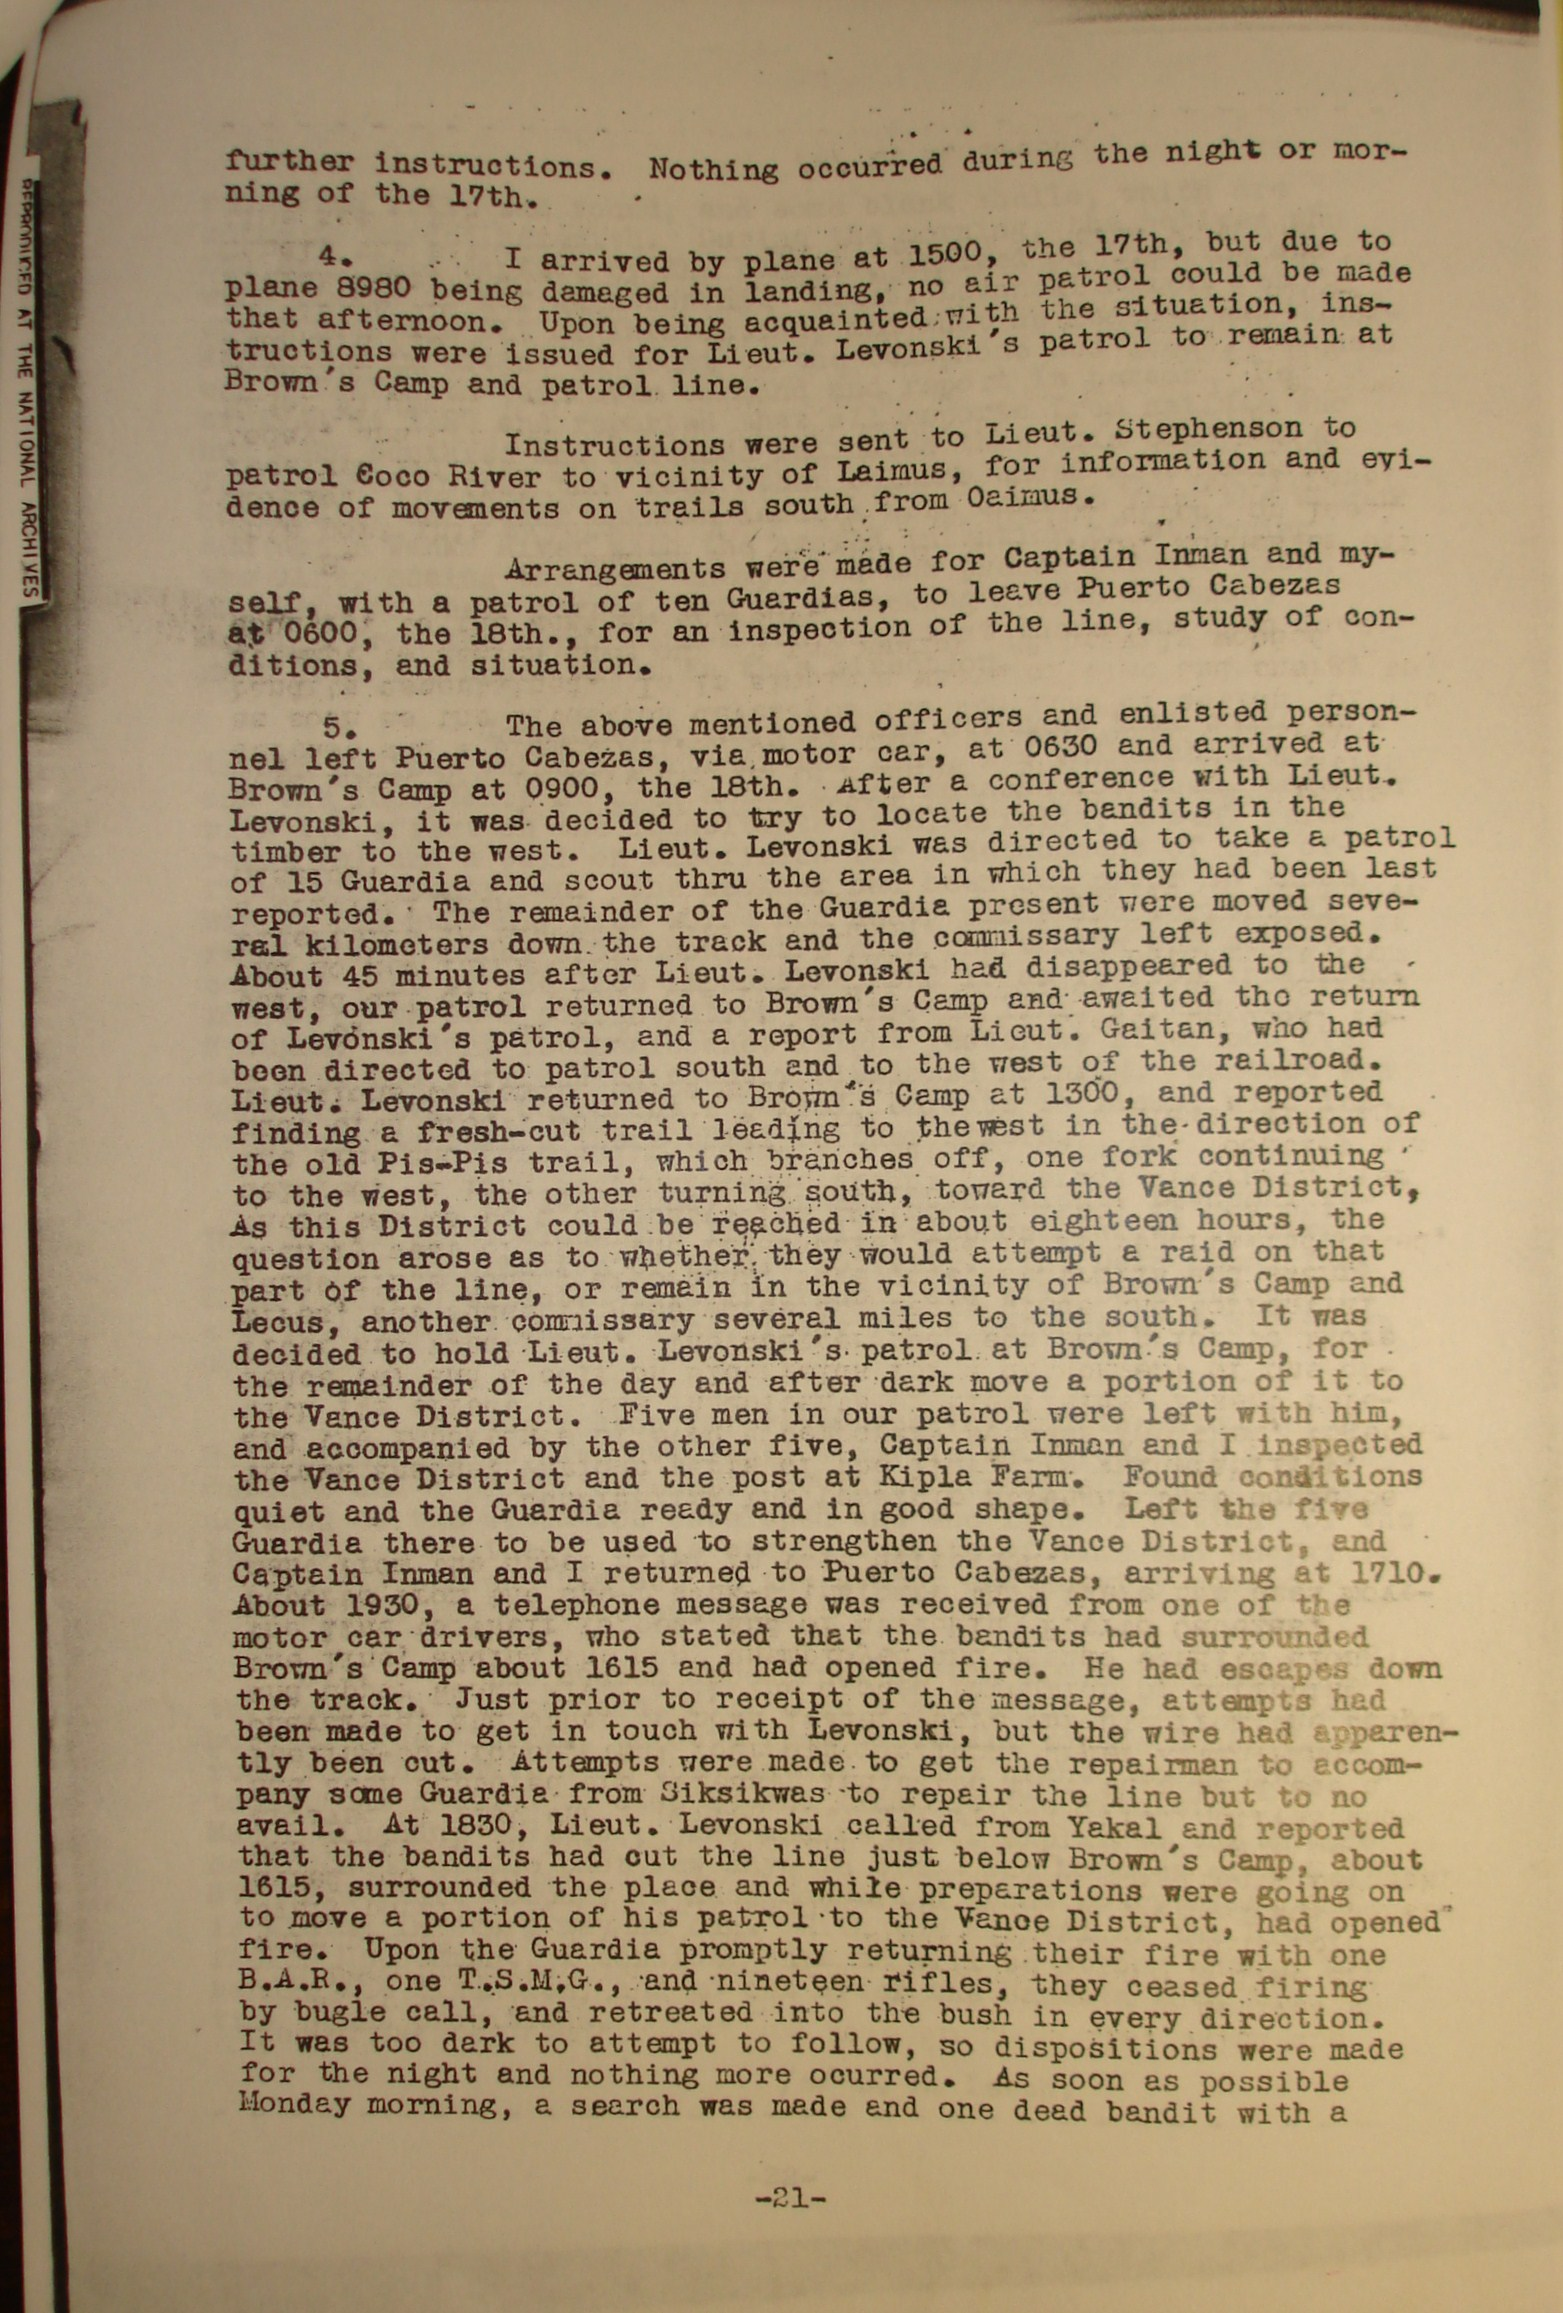 3. 20 January 1932. Report on activities in the Dept of Northern Bluefields and Movement of Patrols since 15 Jan 1932, Col. L. L. Leech, Bluefields, p. 3.